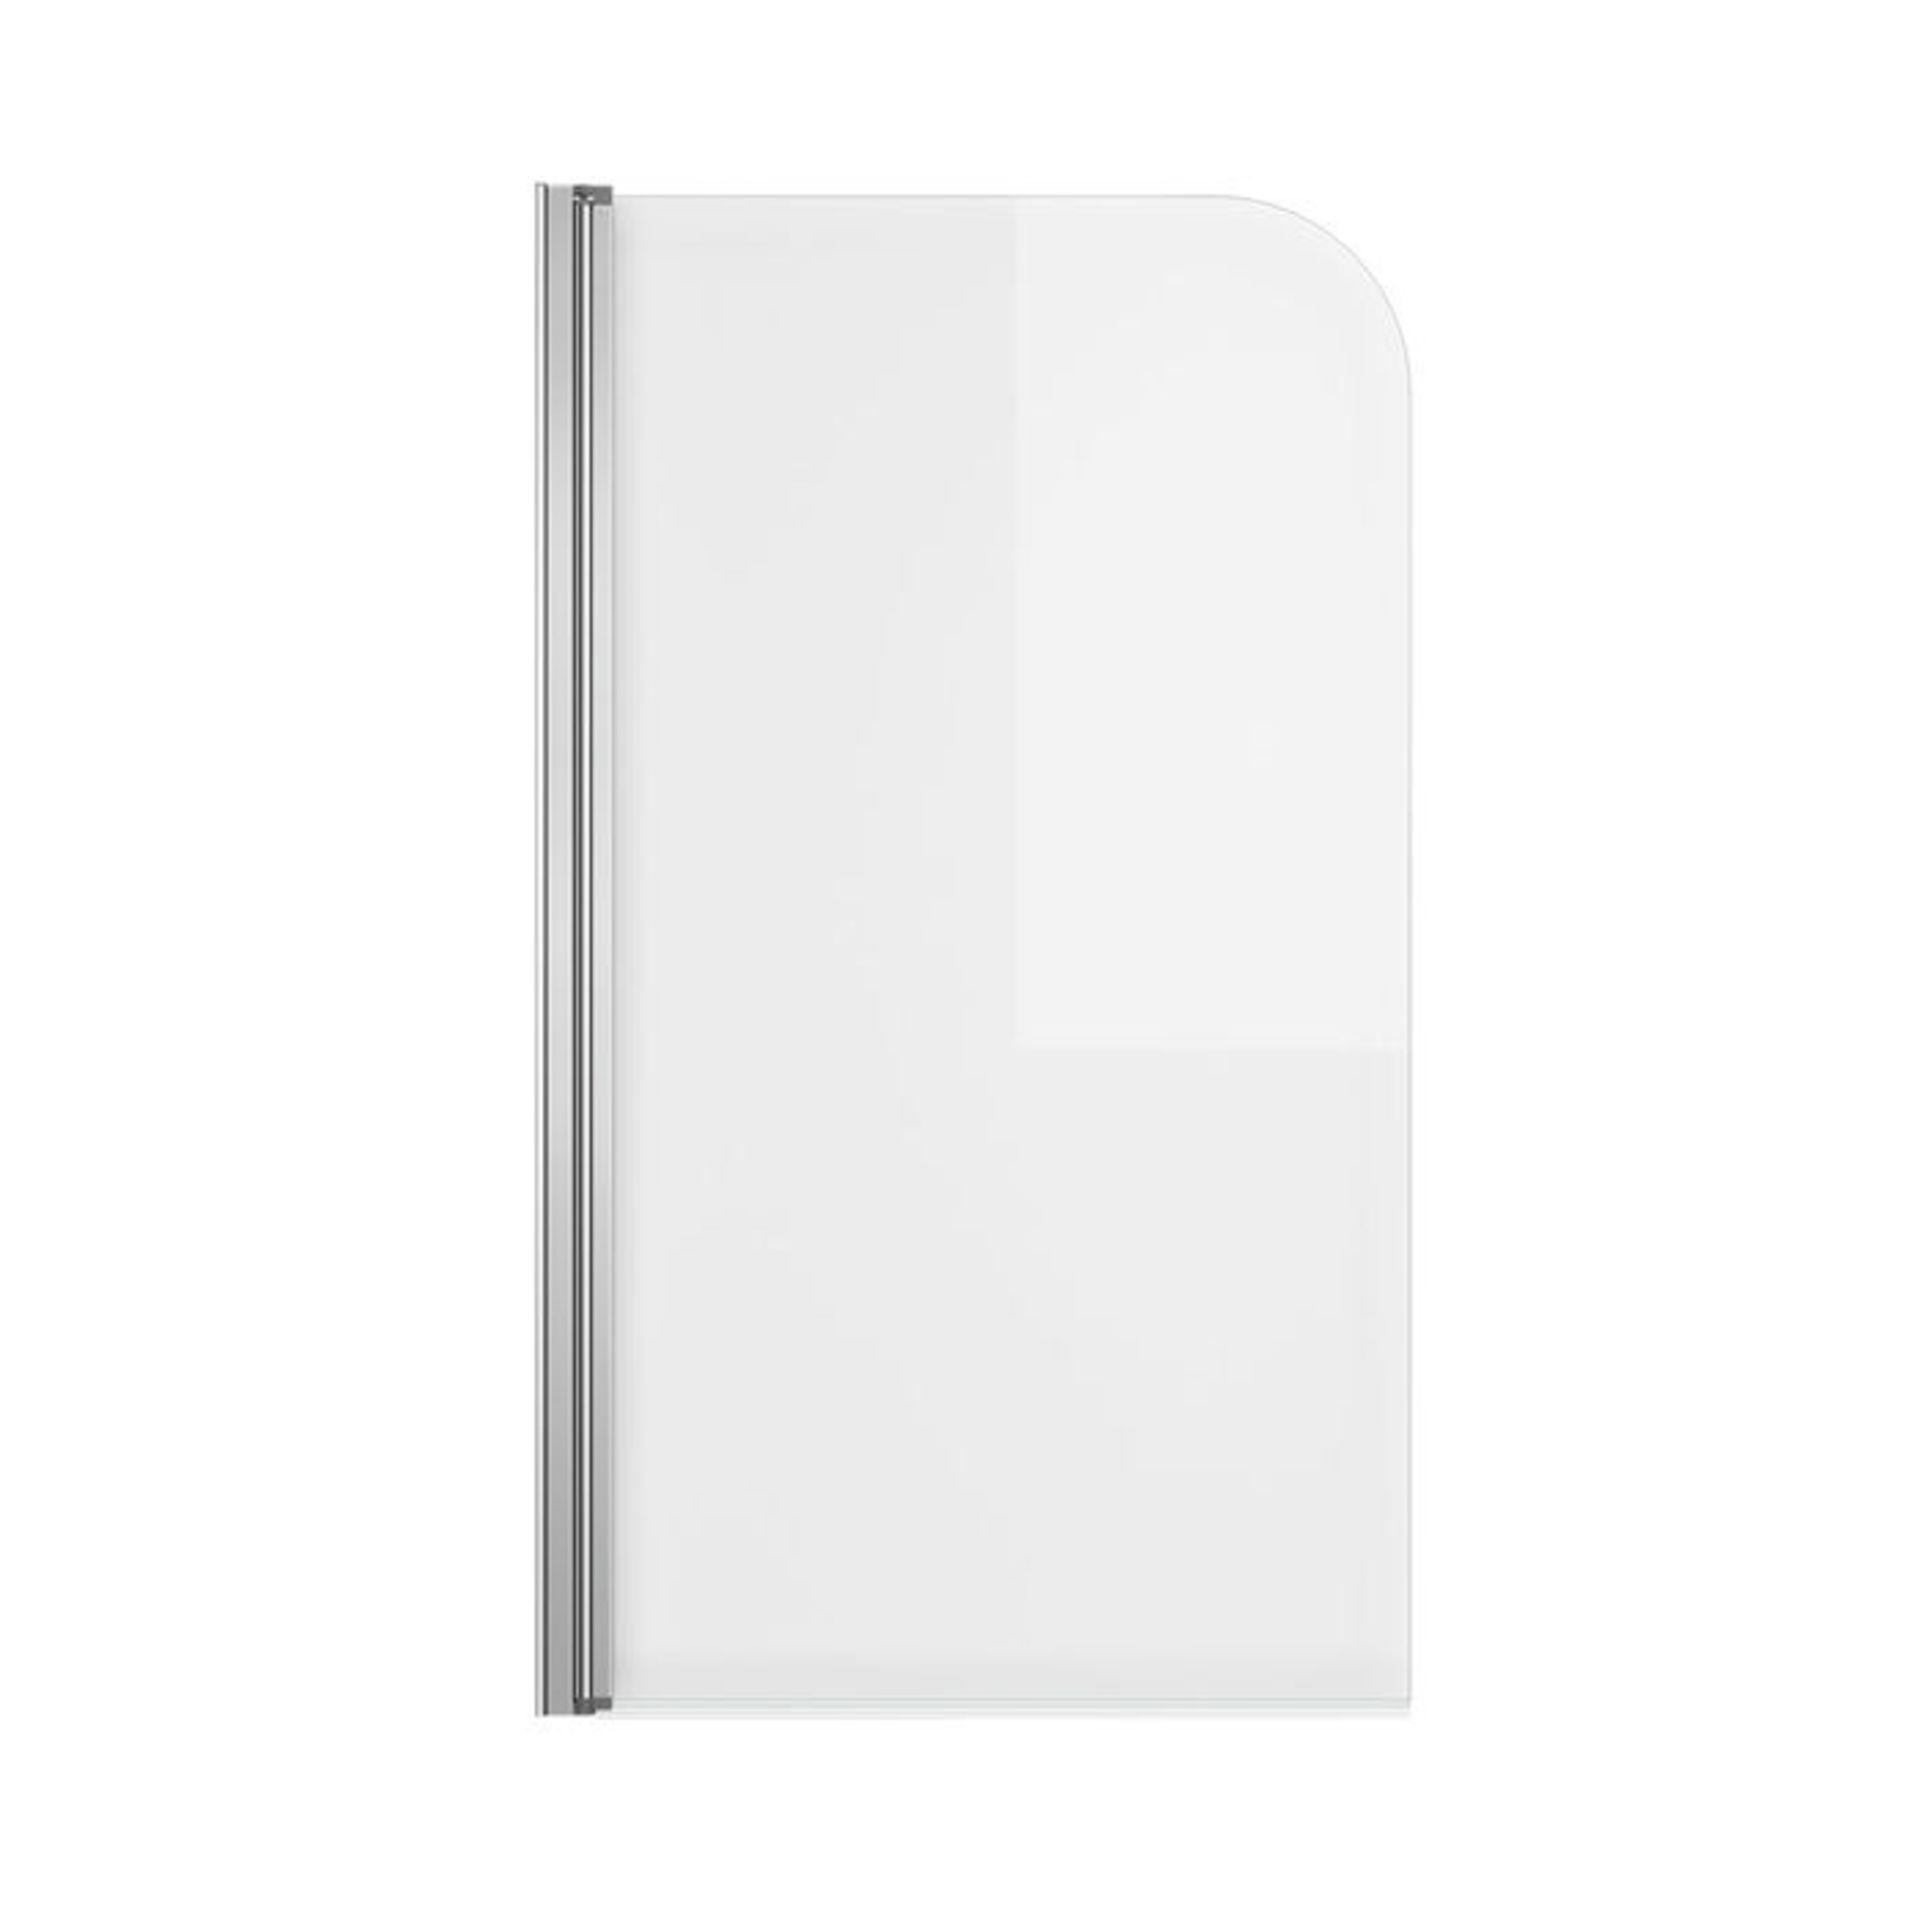 Lot 46 - (XX32) 800mm Bath Shower Screen. RRP £249.99. Great addition to your shower bath 4mm tempered...